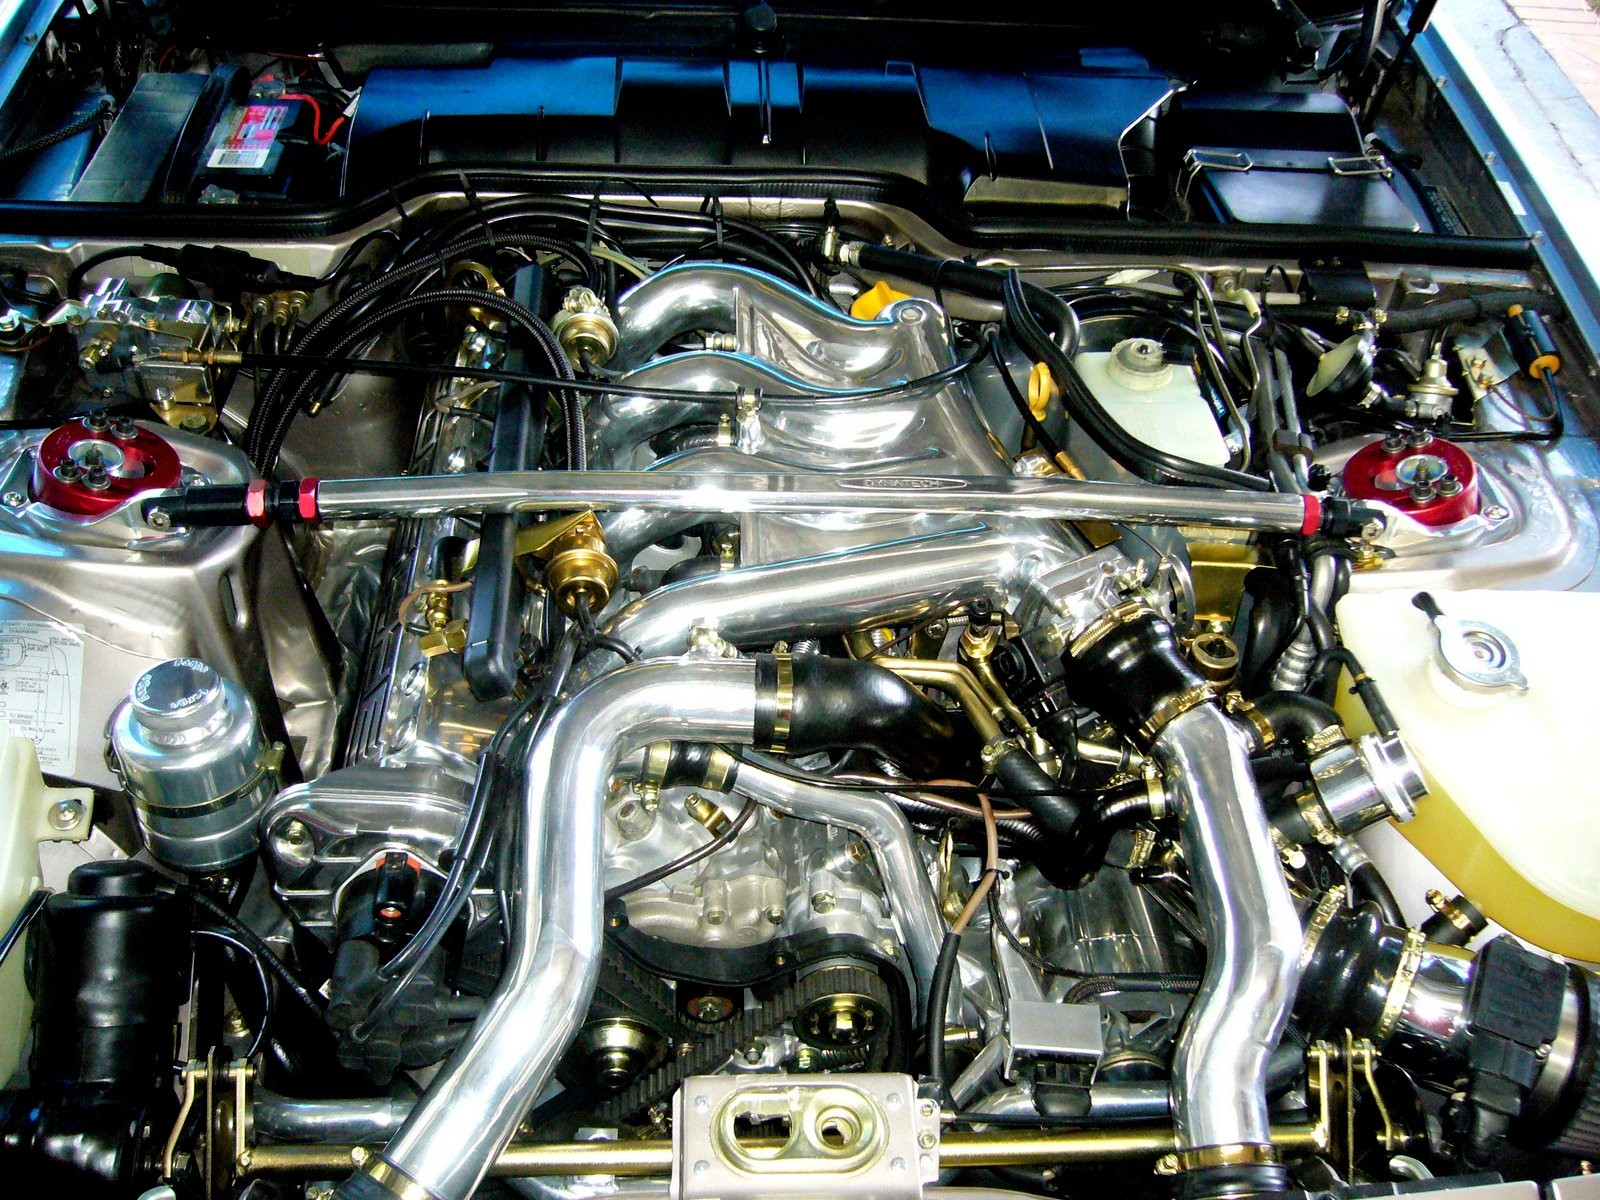 Porsche 944 Engine Diagram How Much Money Do You Have In Your Car Page 11 Rennlist Of Porsche 944 Engine Diagram